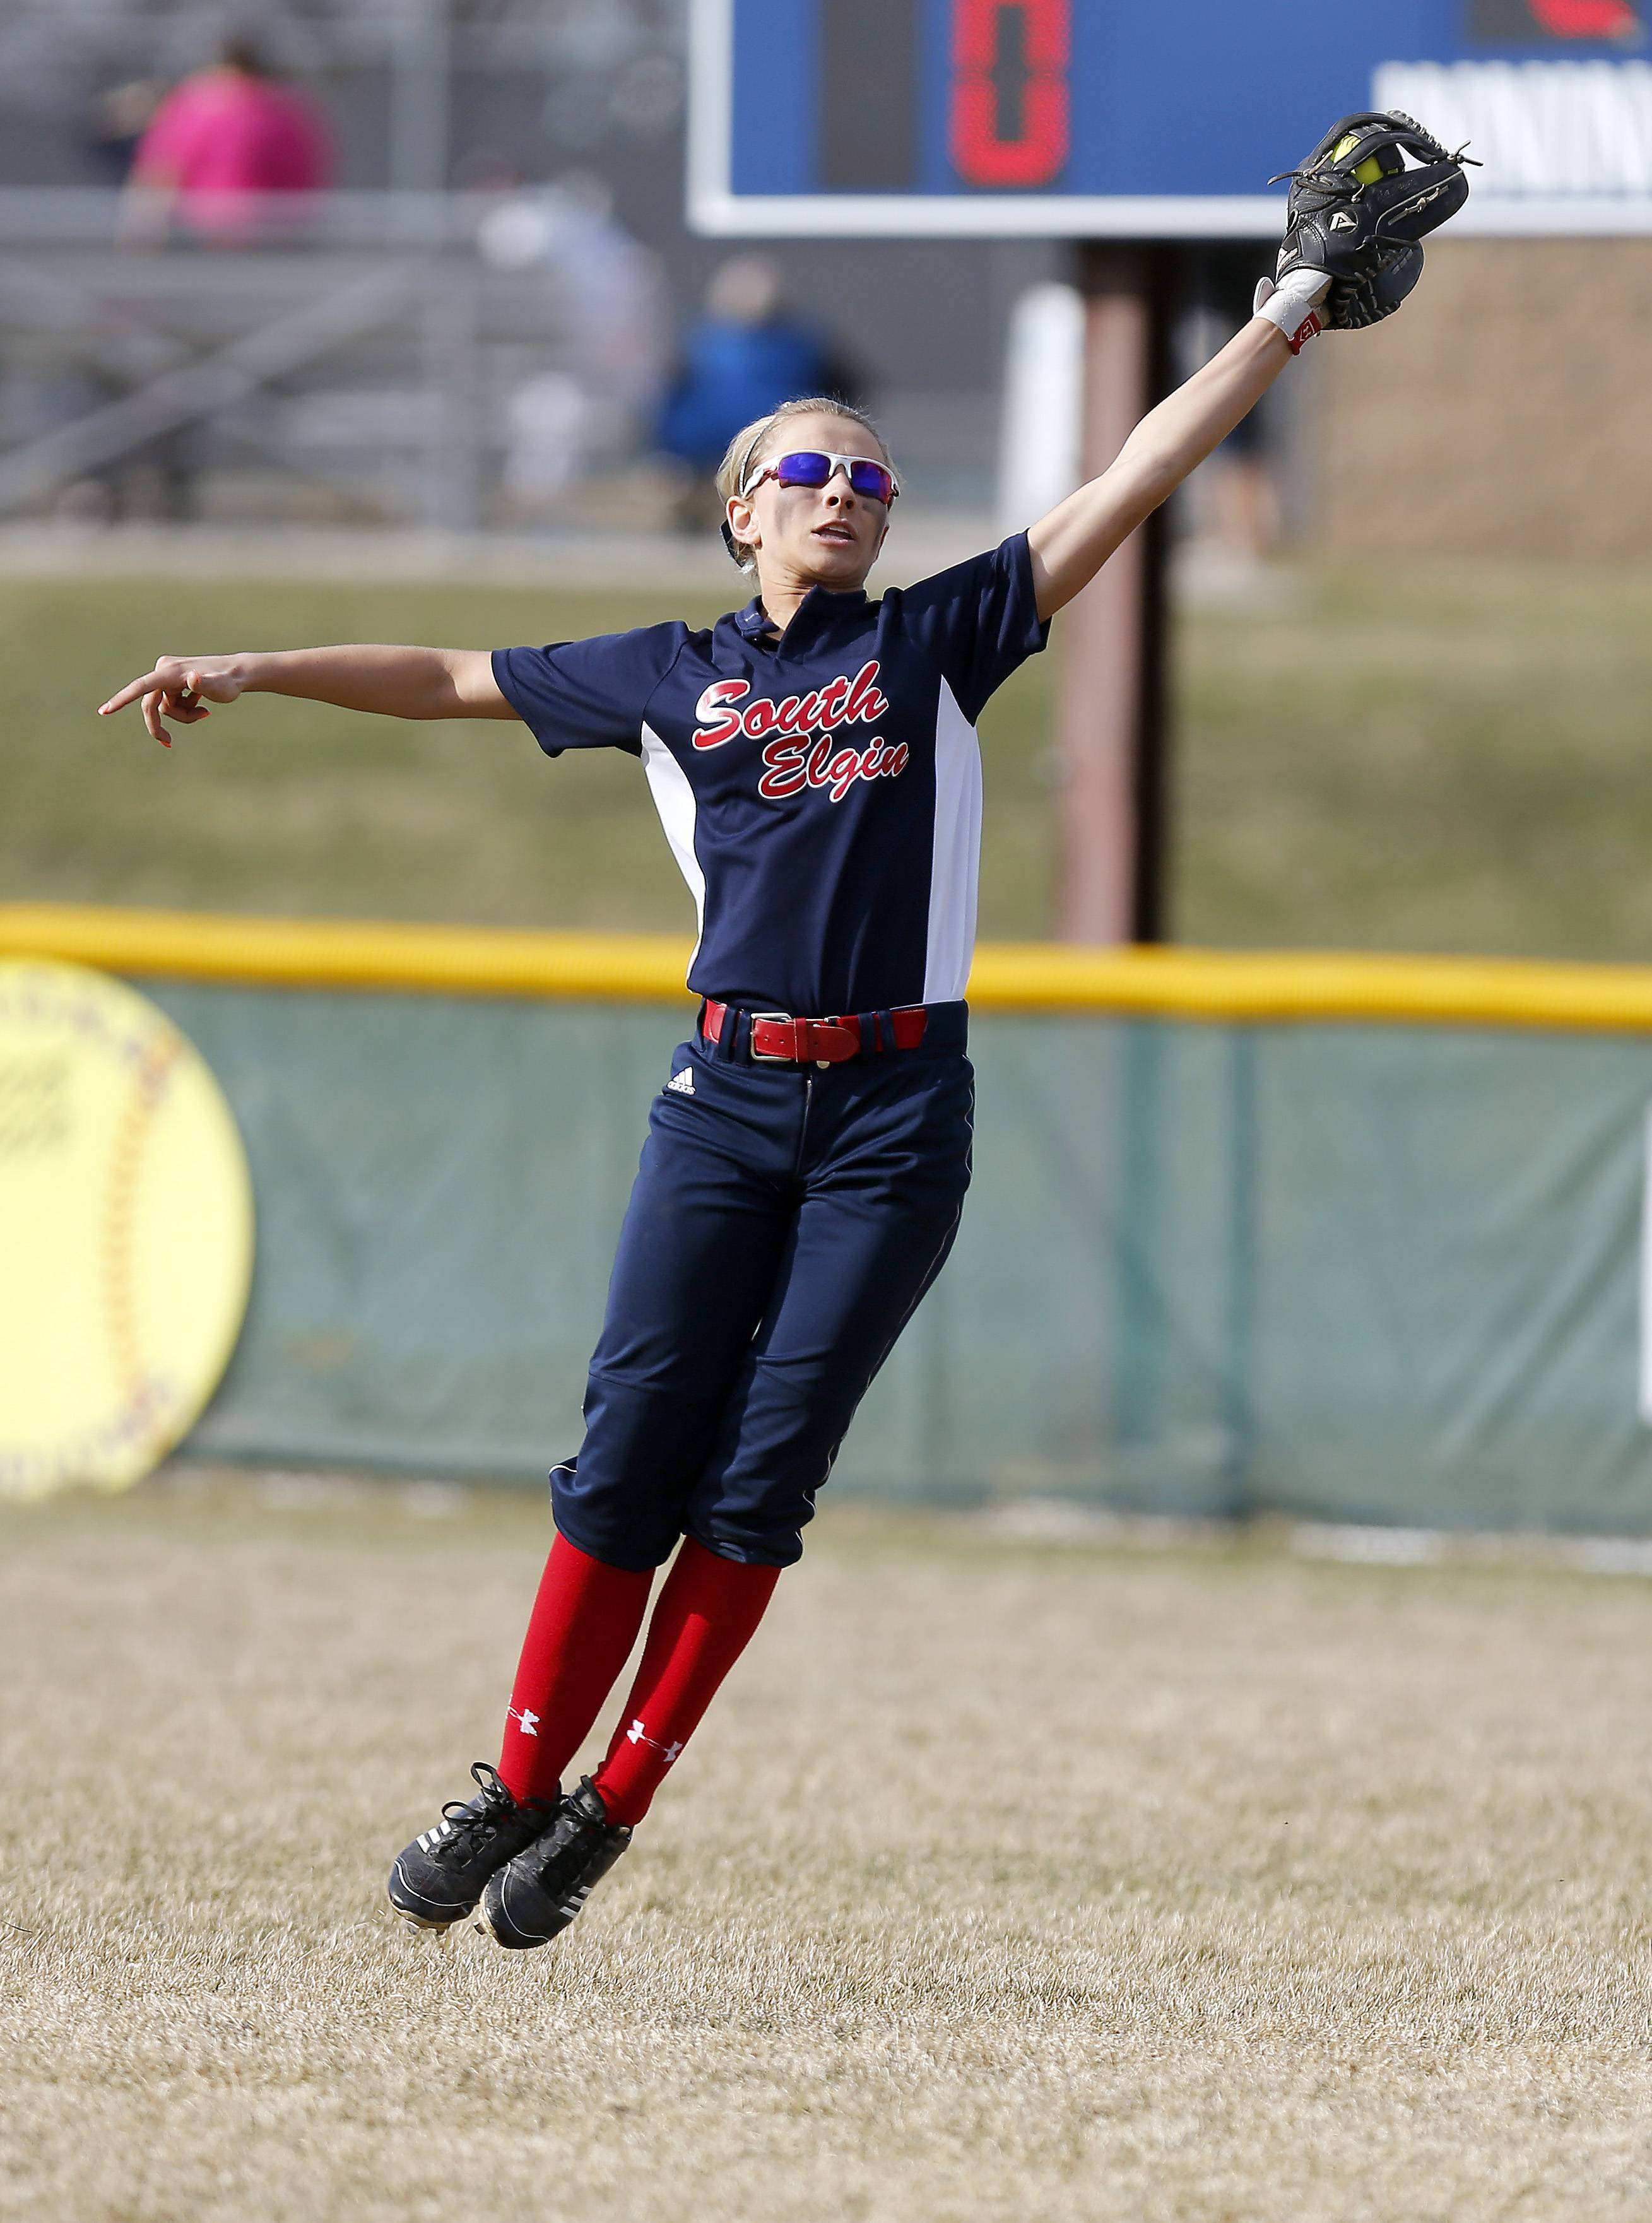 South Elgin's Mallory Mecklenburg will be one of the participants in the 11th Annual Fehlman Memorial Senior All-Star Game, set for Monday night at Judson University.